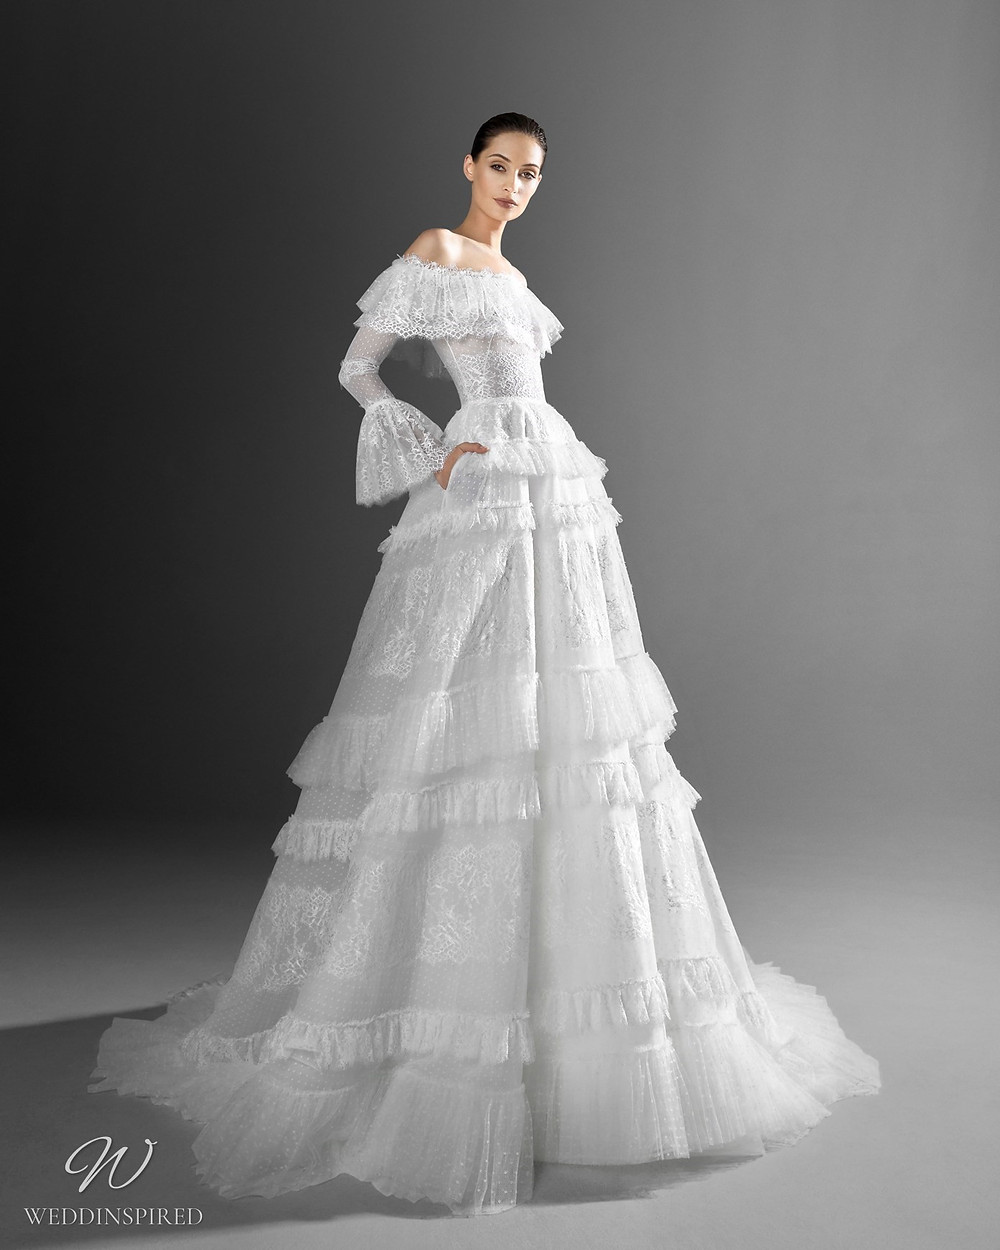 A Zuhair Murad off the shoulder ball gown wedding dress with ruffles and bell sleeves